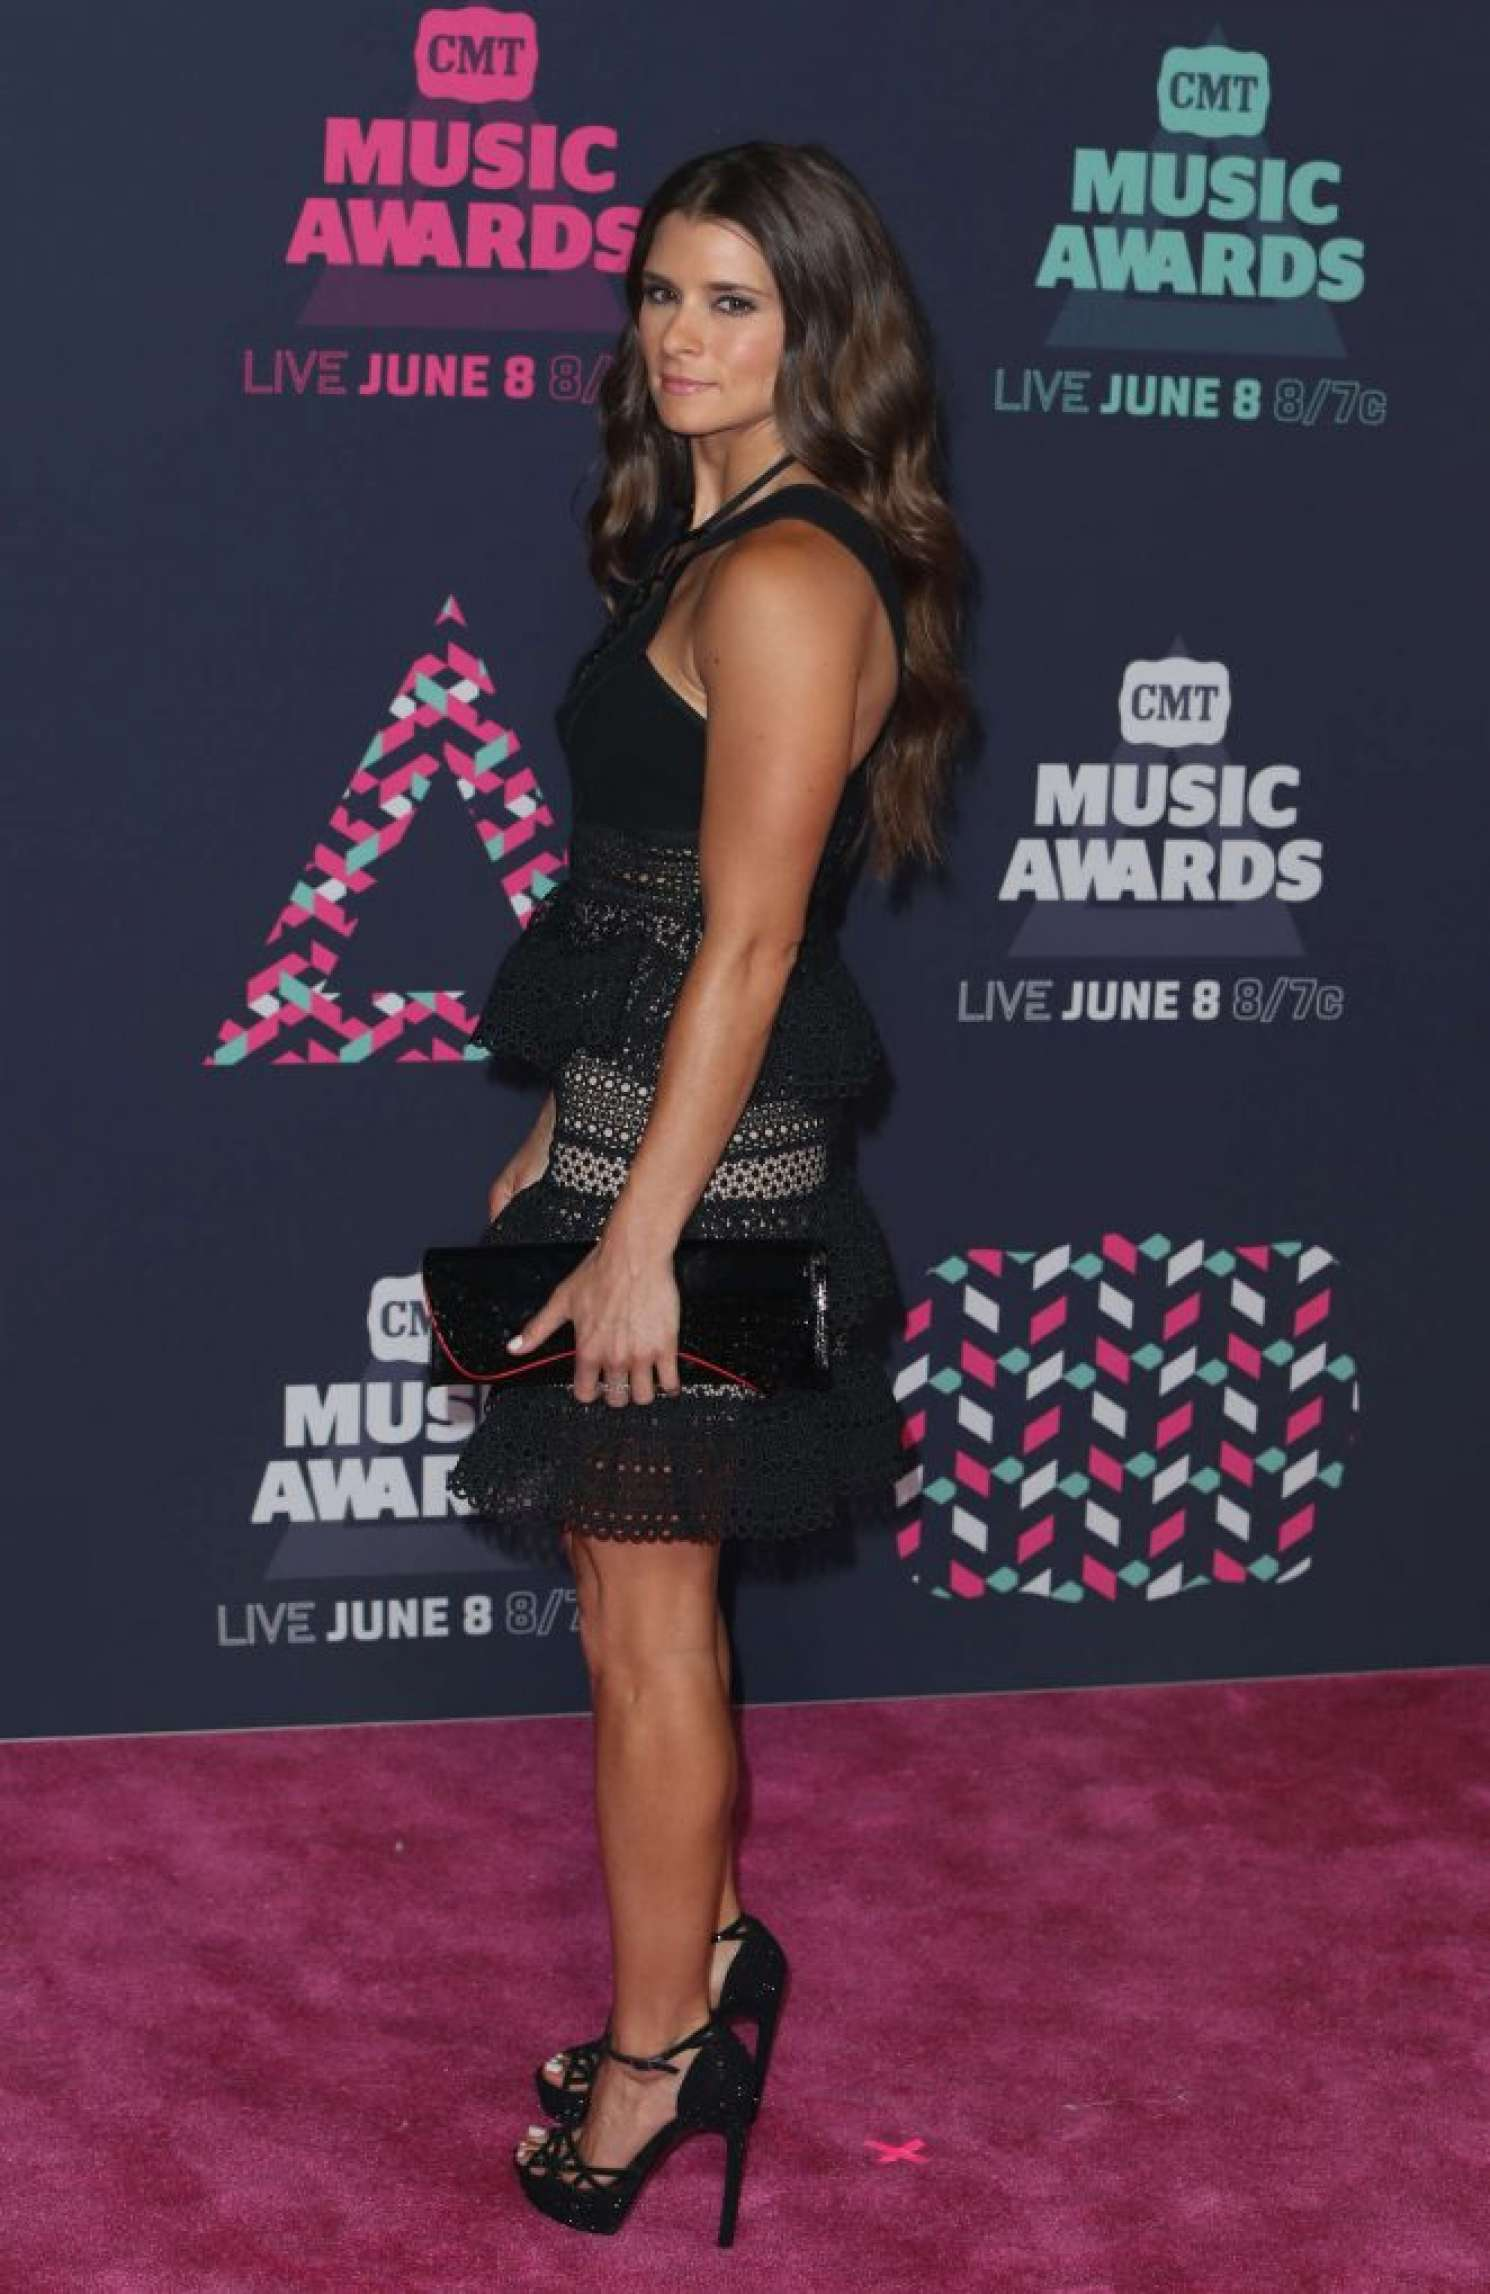 Back to FULL gallery Danica Patrick – 2016 CMT Music Awards